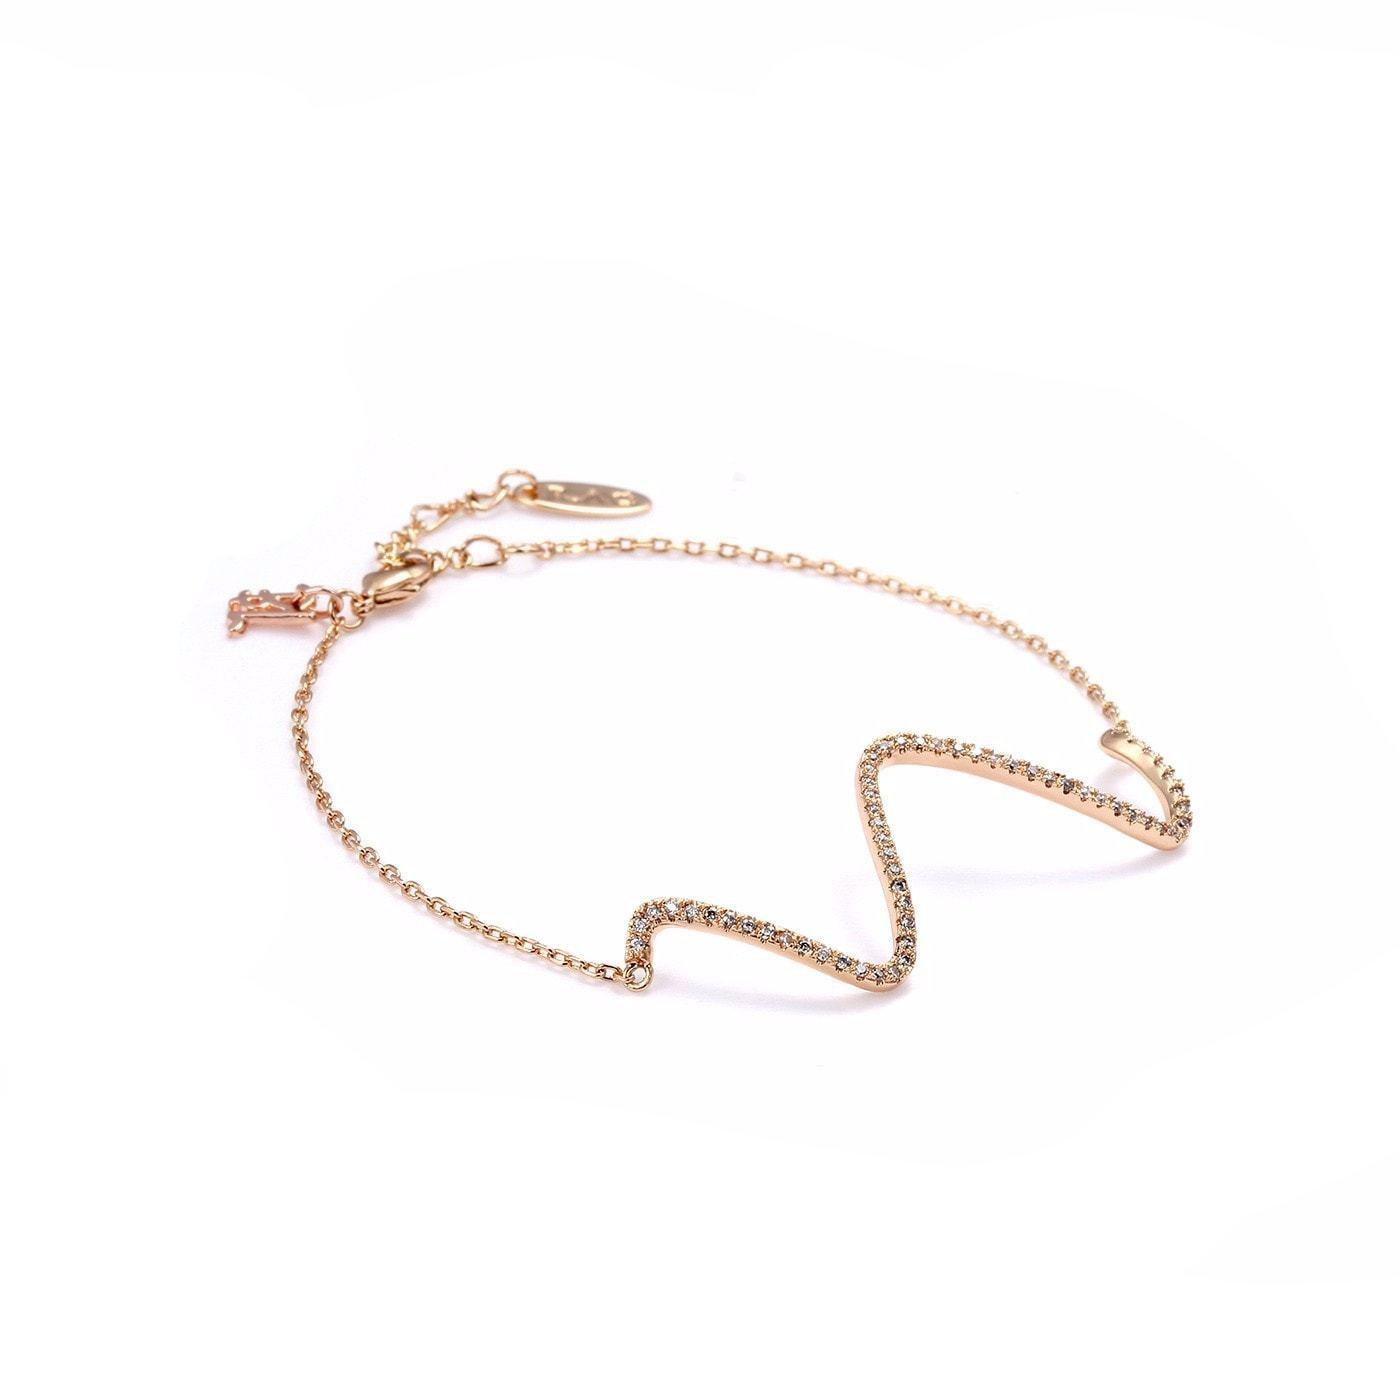 Sheer Curves Elite Bracelet-Blinglane